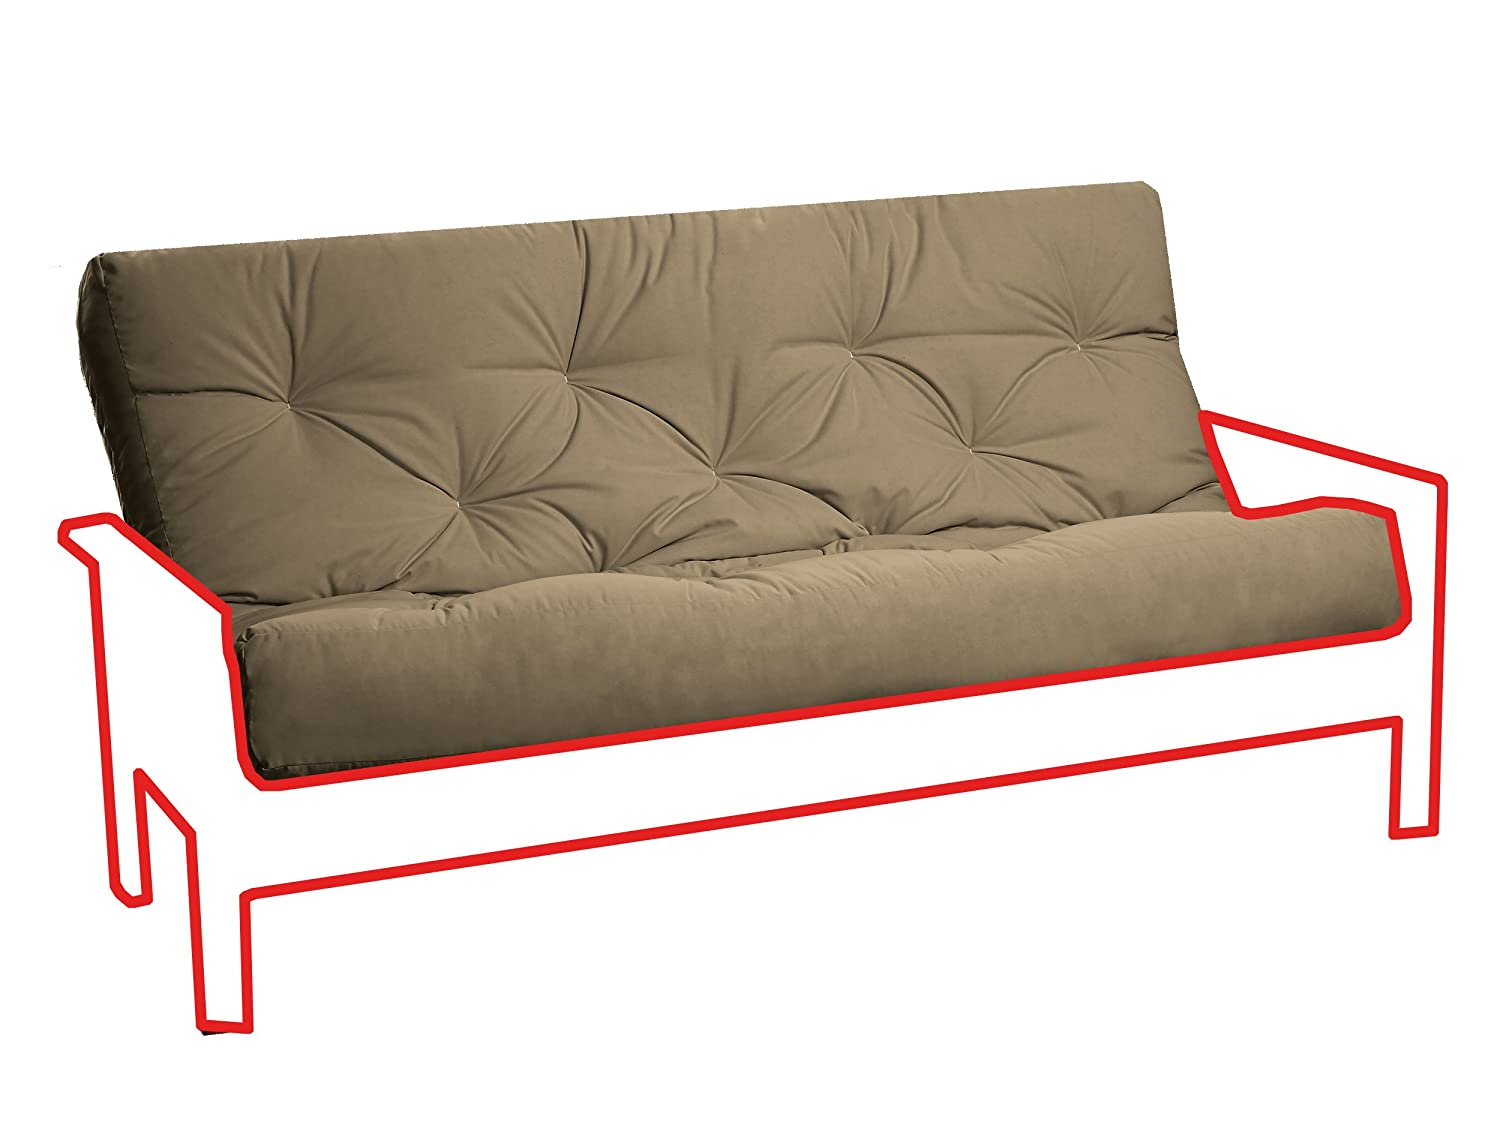 Royal Sleep Products New Replacement Futon Mattress